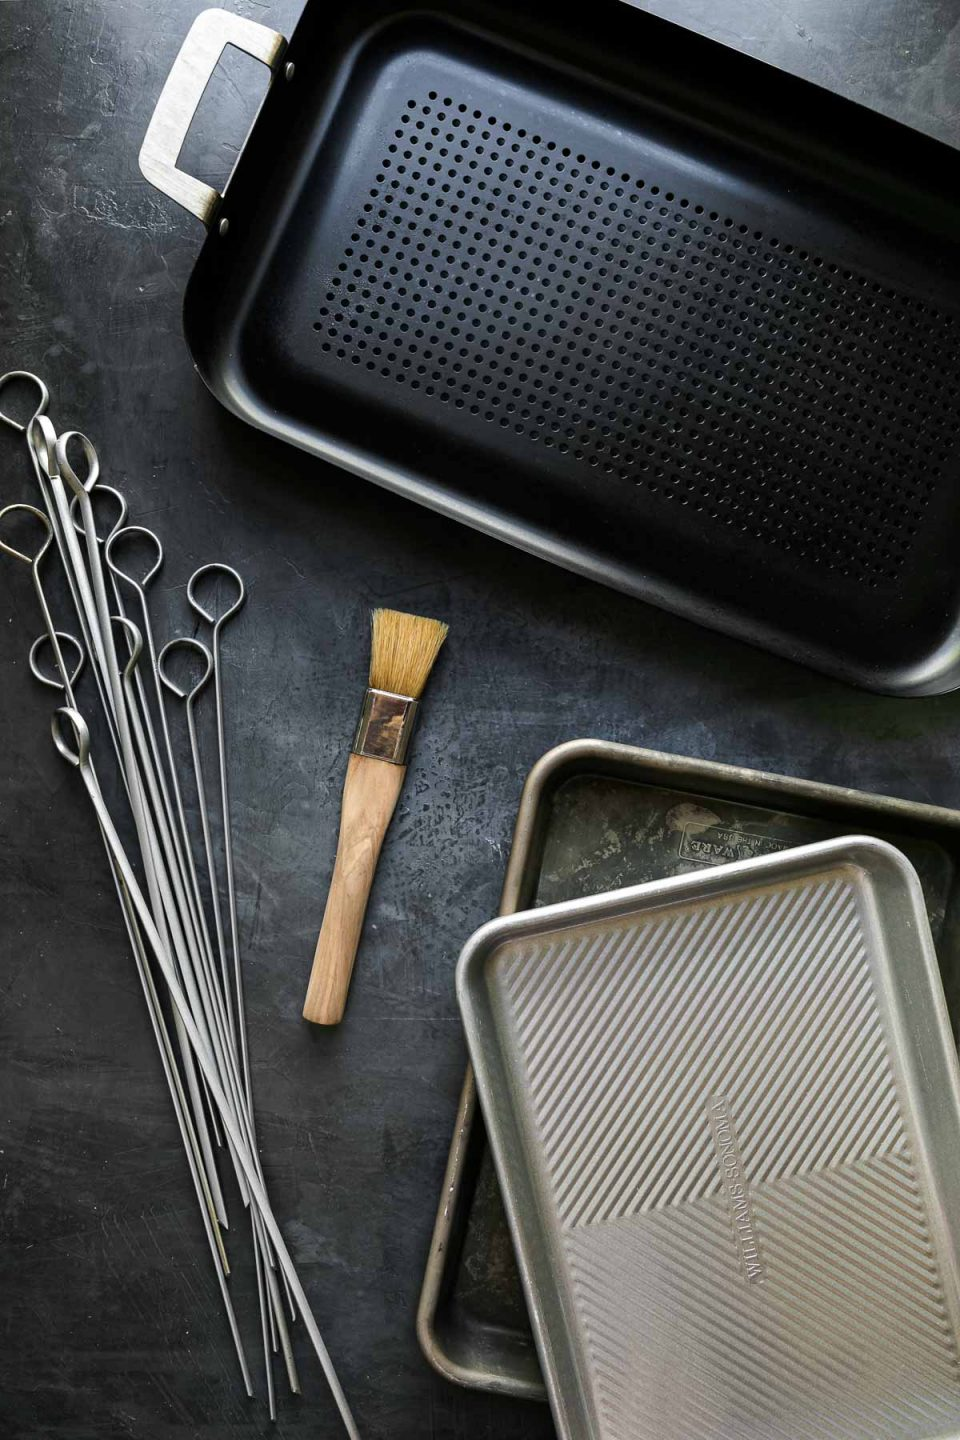 Grill tools arranged on a black surface: quarter sheet pans, stainless steel skewers, pastry brush, & a grill pan.